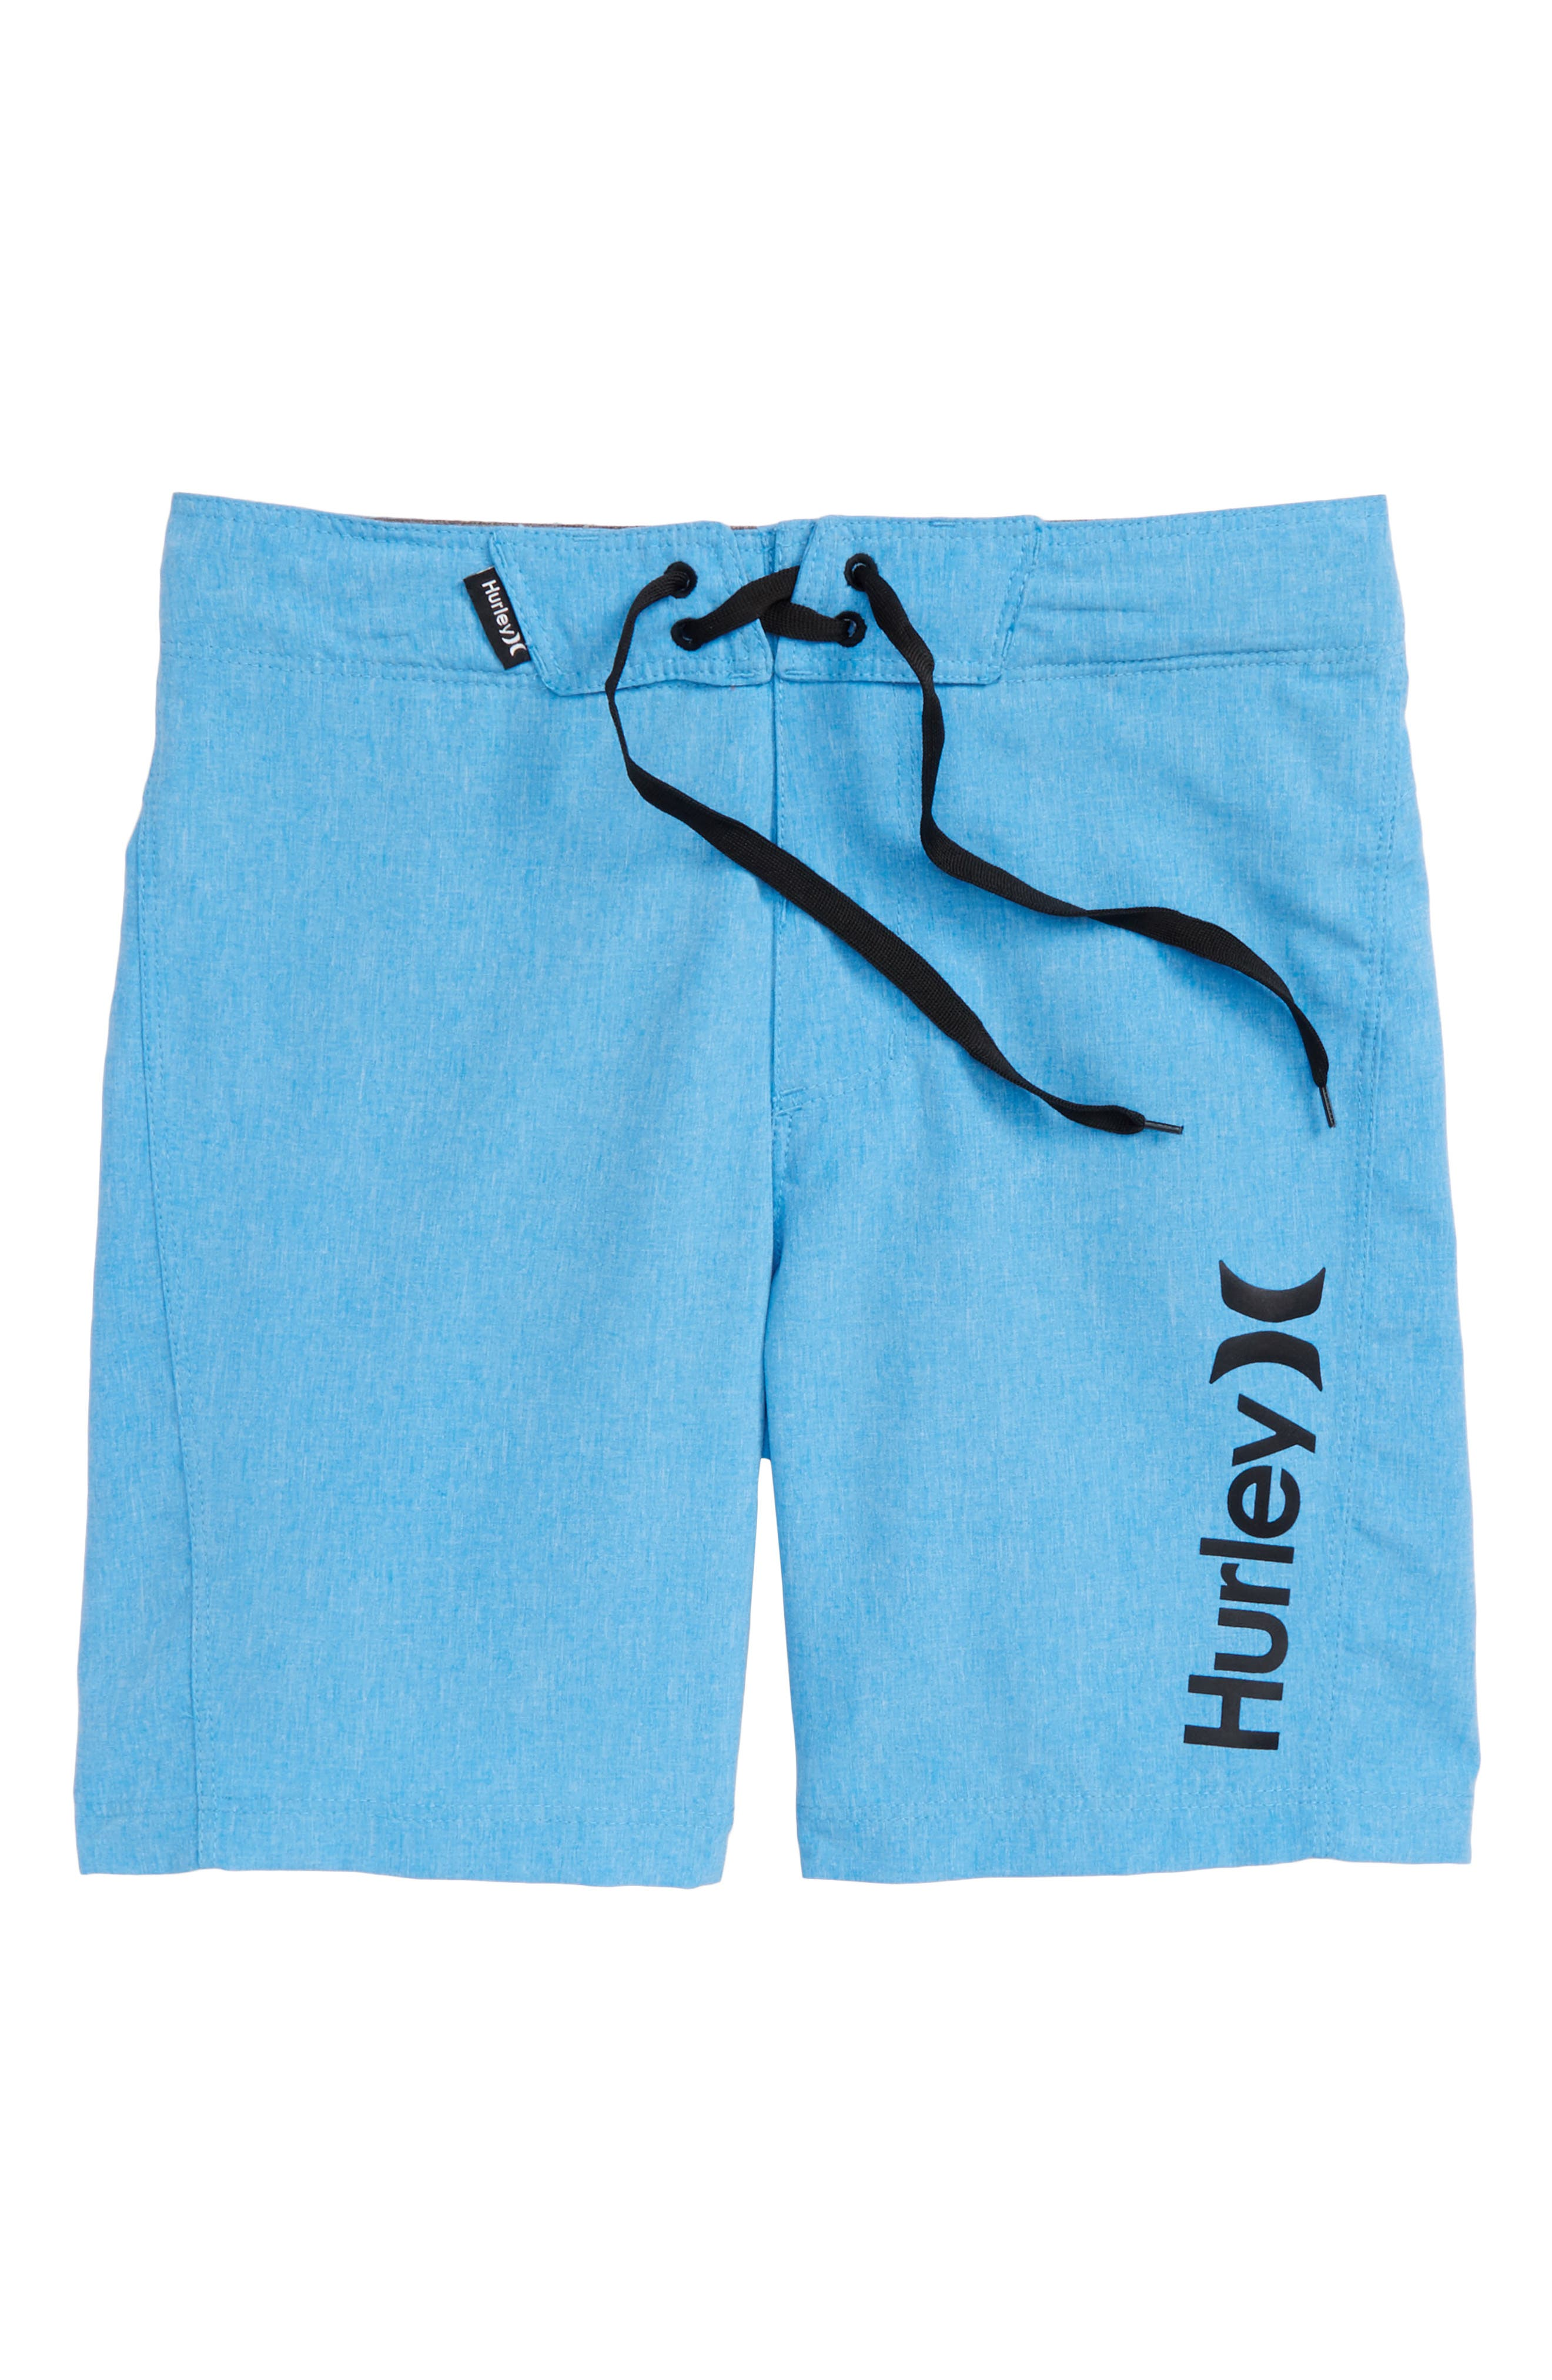 One and Only Dri-FIT Board Shorts,                         Main,                         color, 431